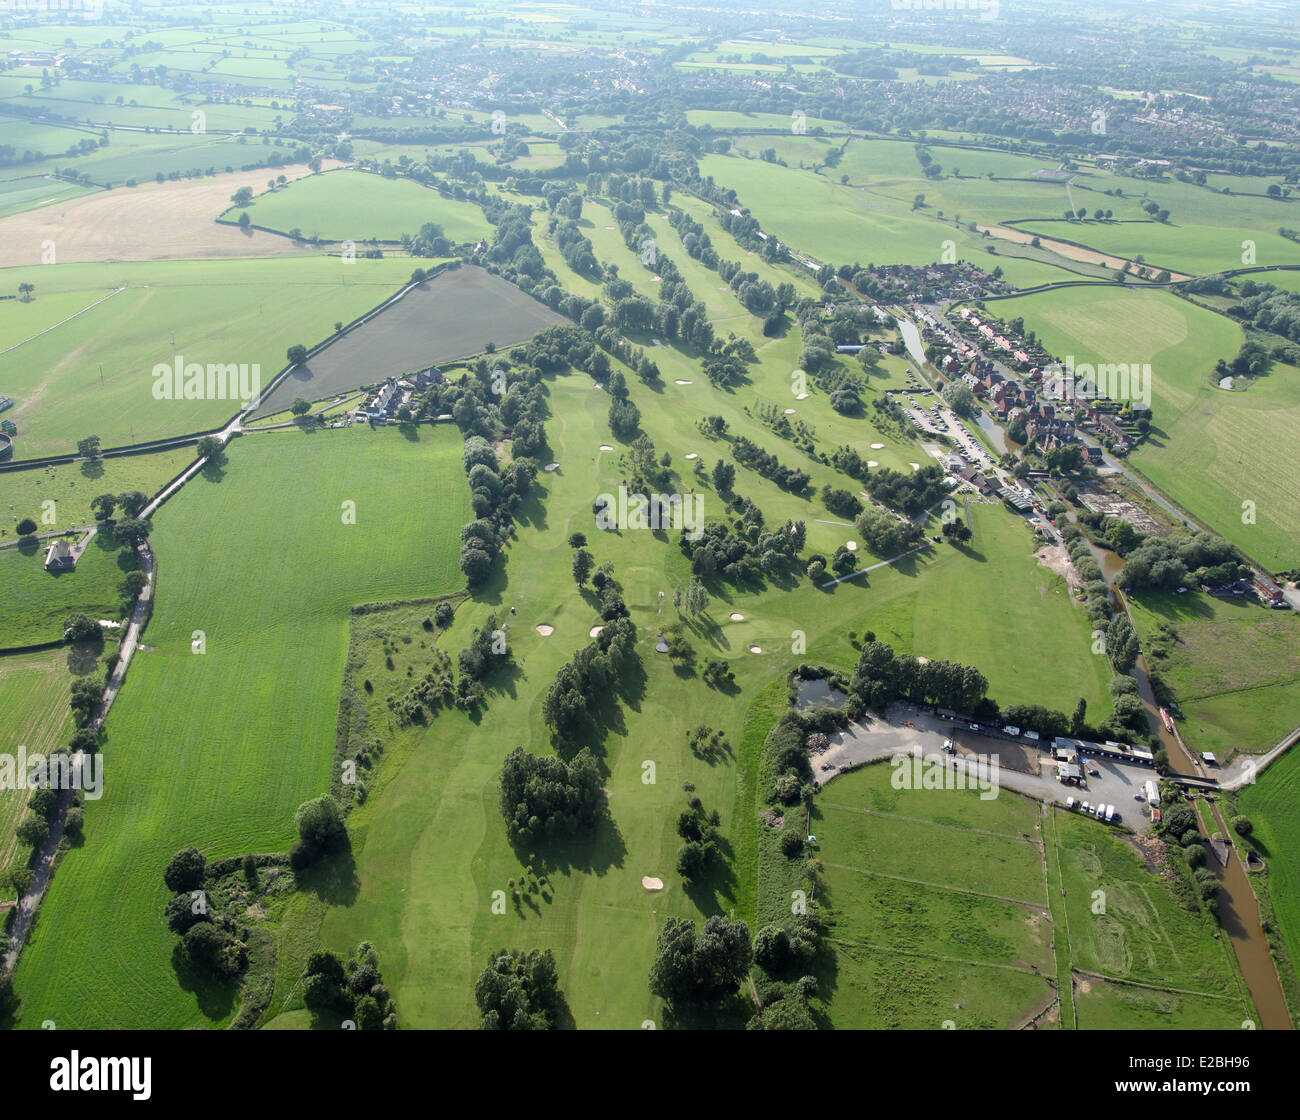 aerial view of Malkins Bank Golf Course at Sandbach in Cheshire, UK - Stock Image